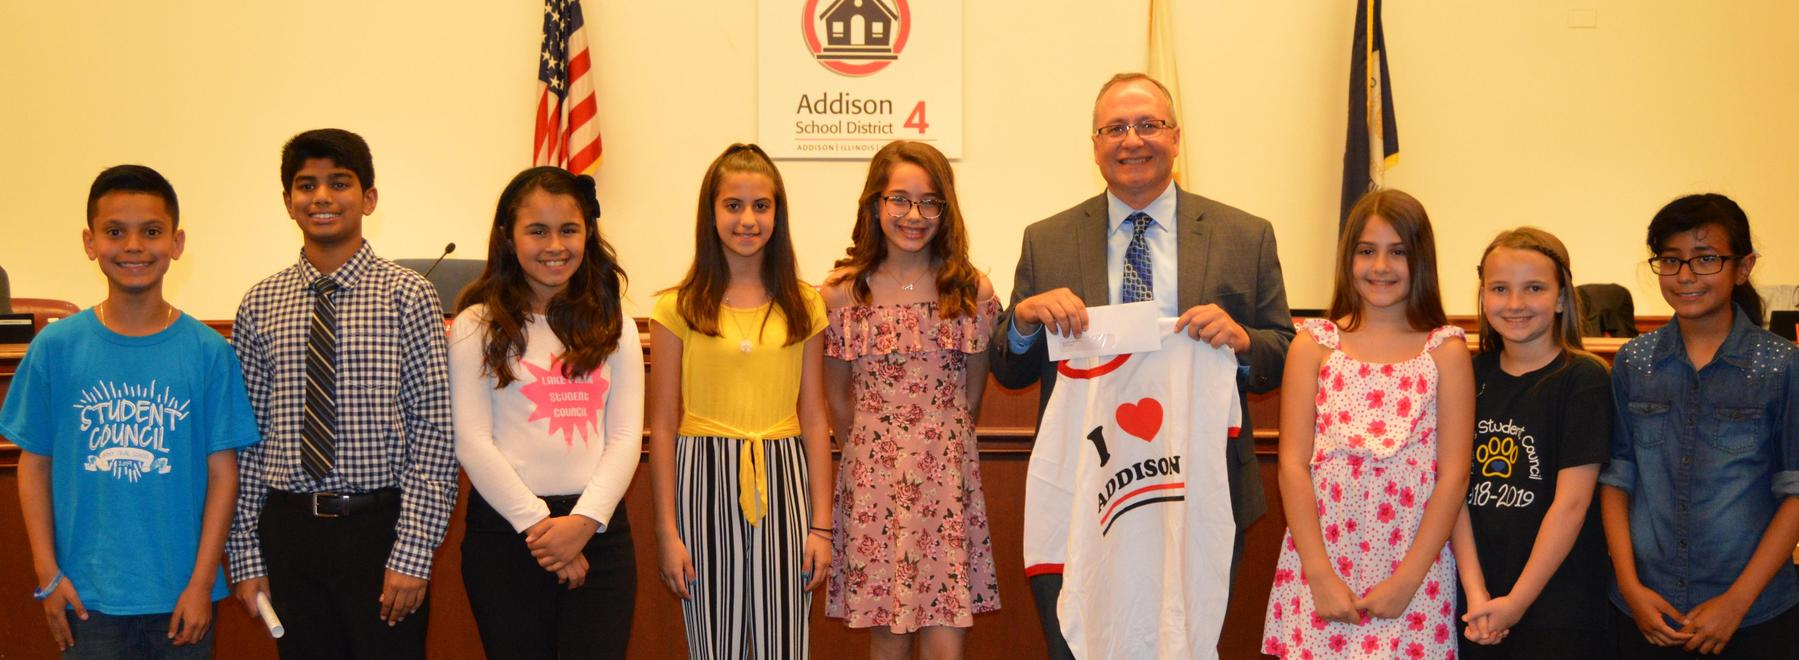 Student Council Presidents present Dennis Reboletti with donation for Addison Township Pantry